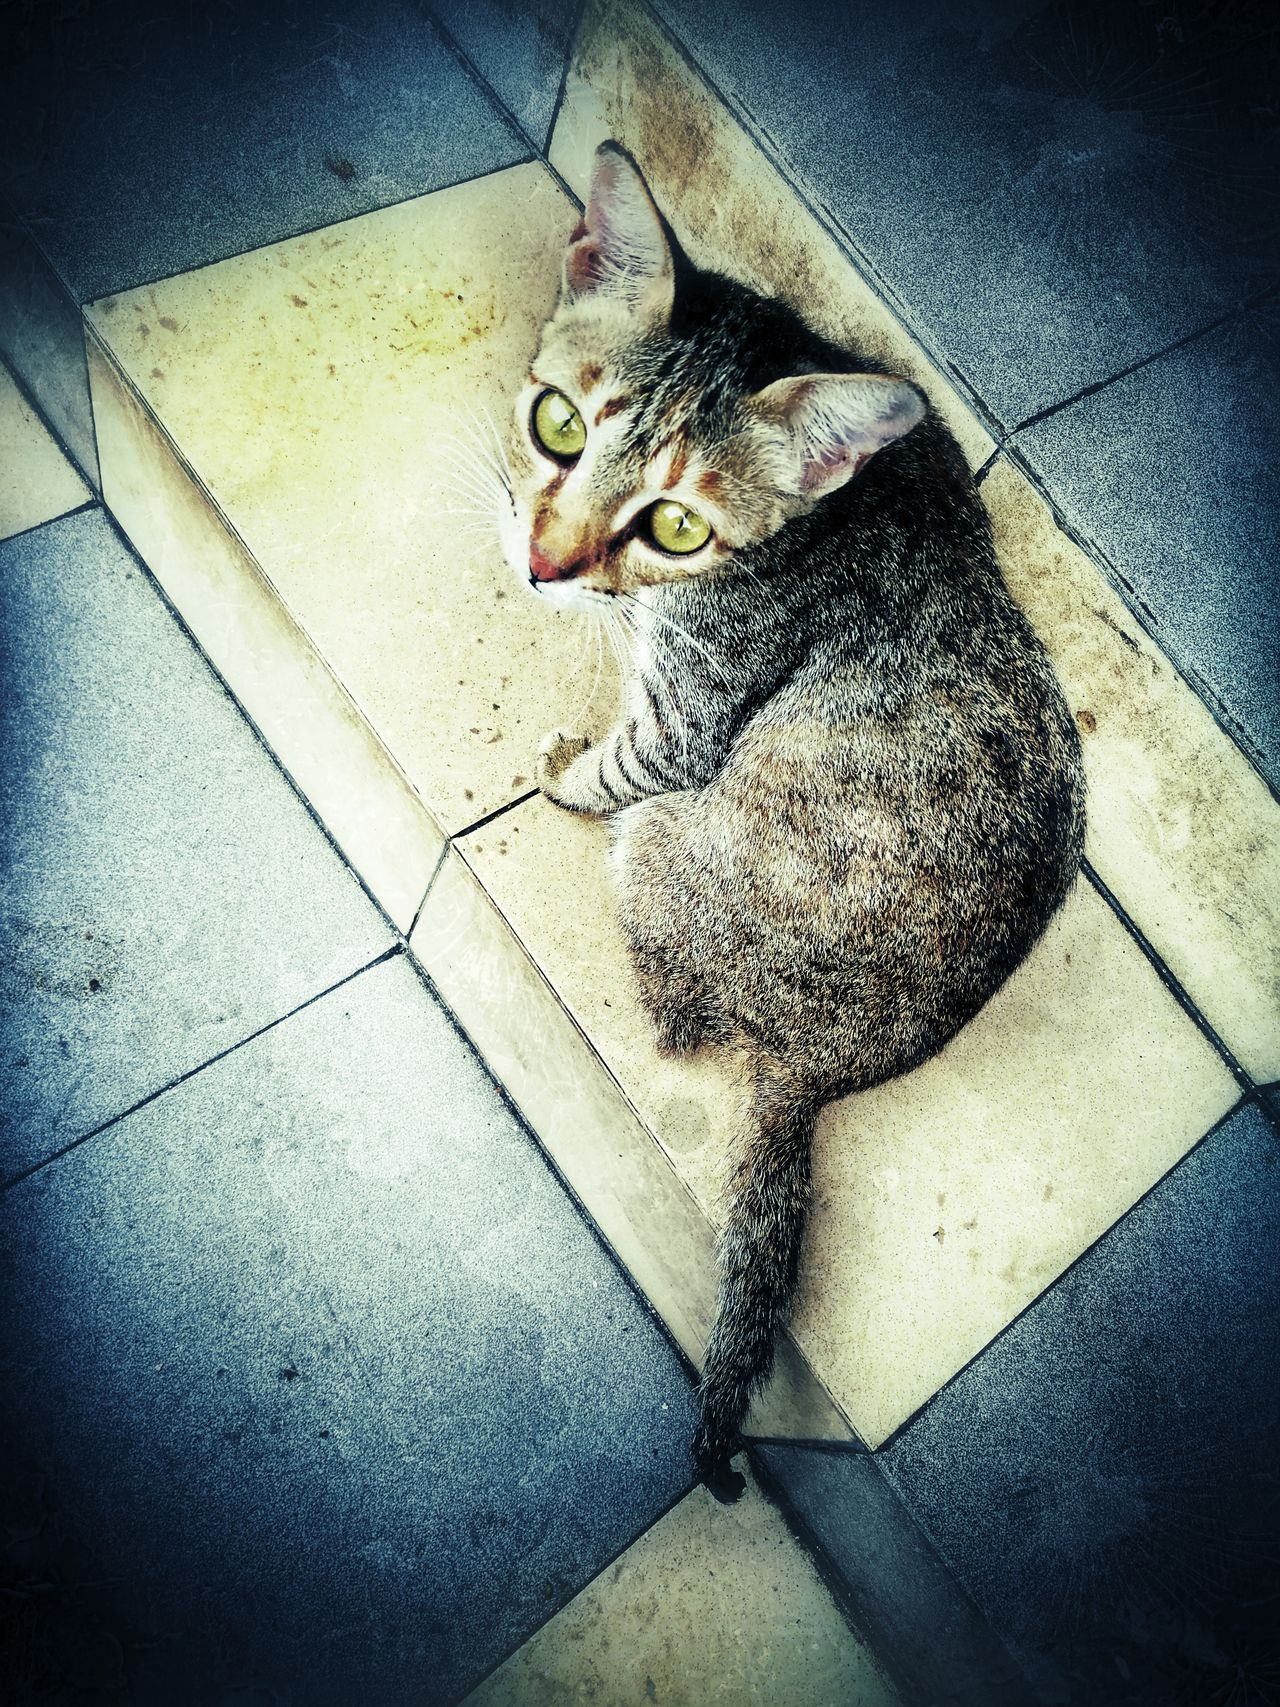 Domestic Animals Animal Themes Pets Domestic Cat Mammal HuaweiP9 Huawei P9 Plus Huaweiphotography Homeless Animal Homeless Cat Animal Cat Hua Wei P9 Plus Homeless Cats Homeless Kitten Homeless Homelessness  Outdoors Outdoor Photography Kitten One Animal Homelessness